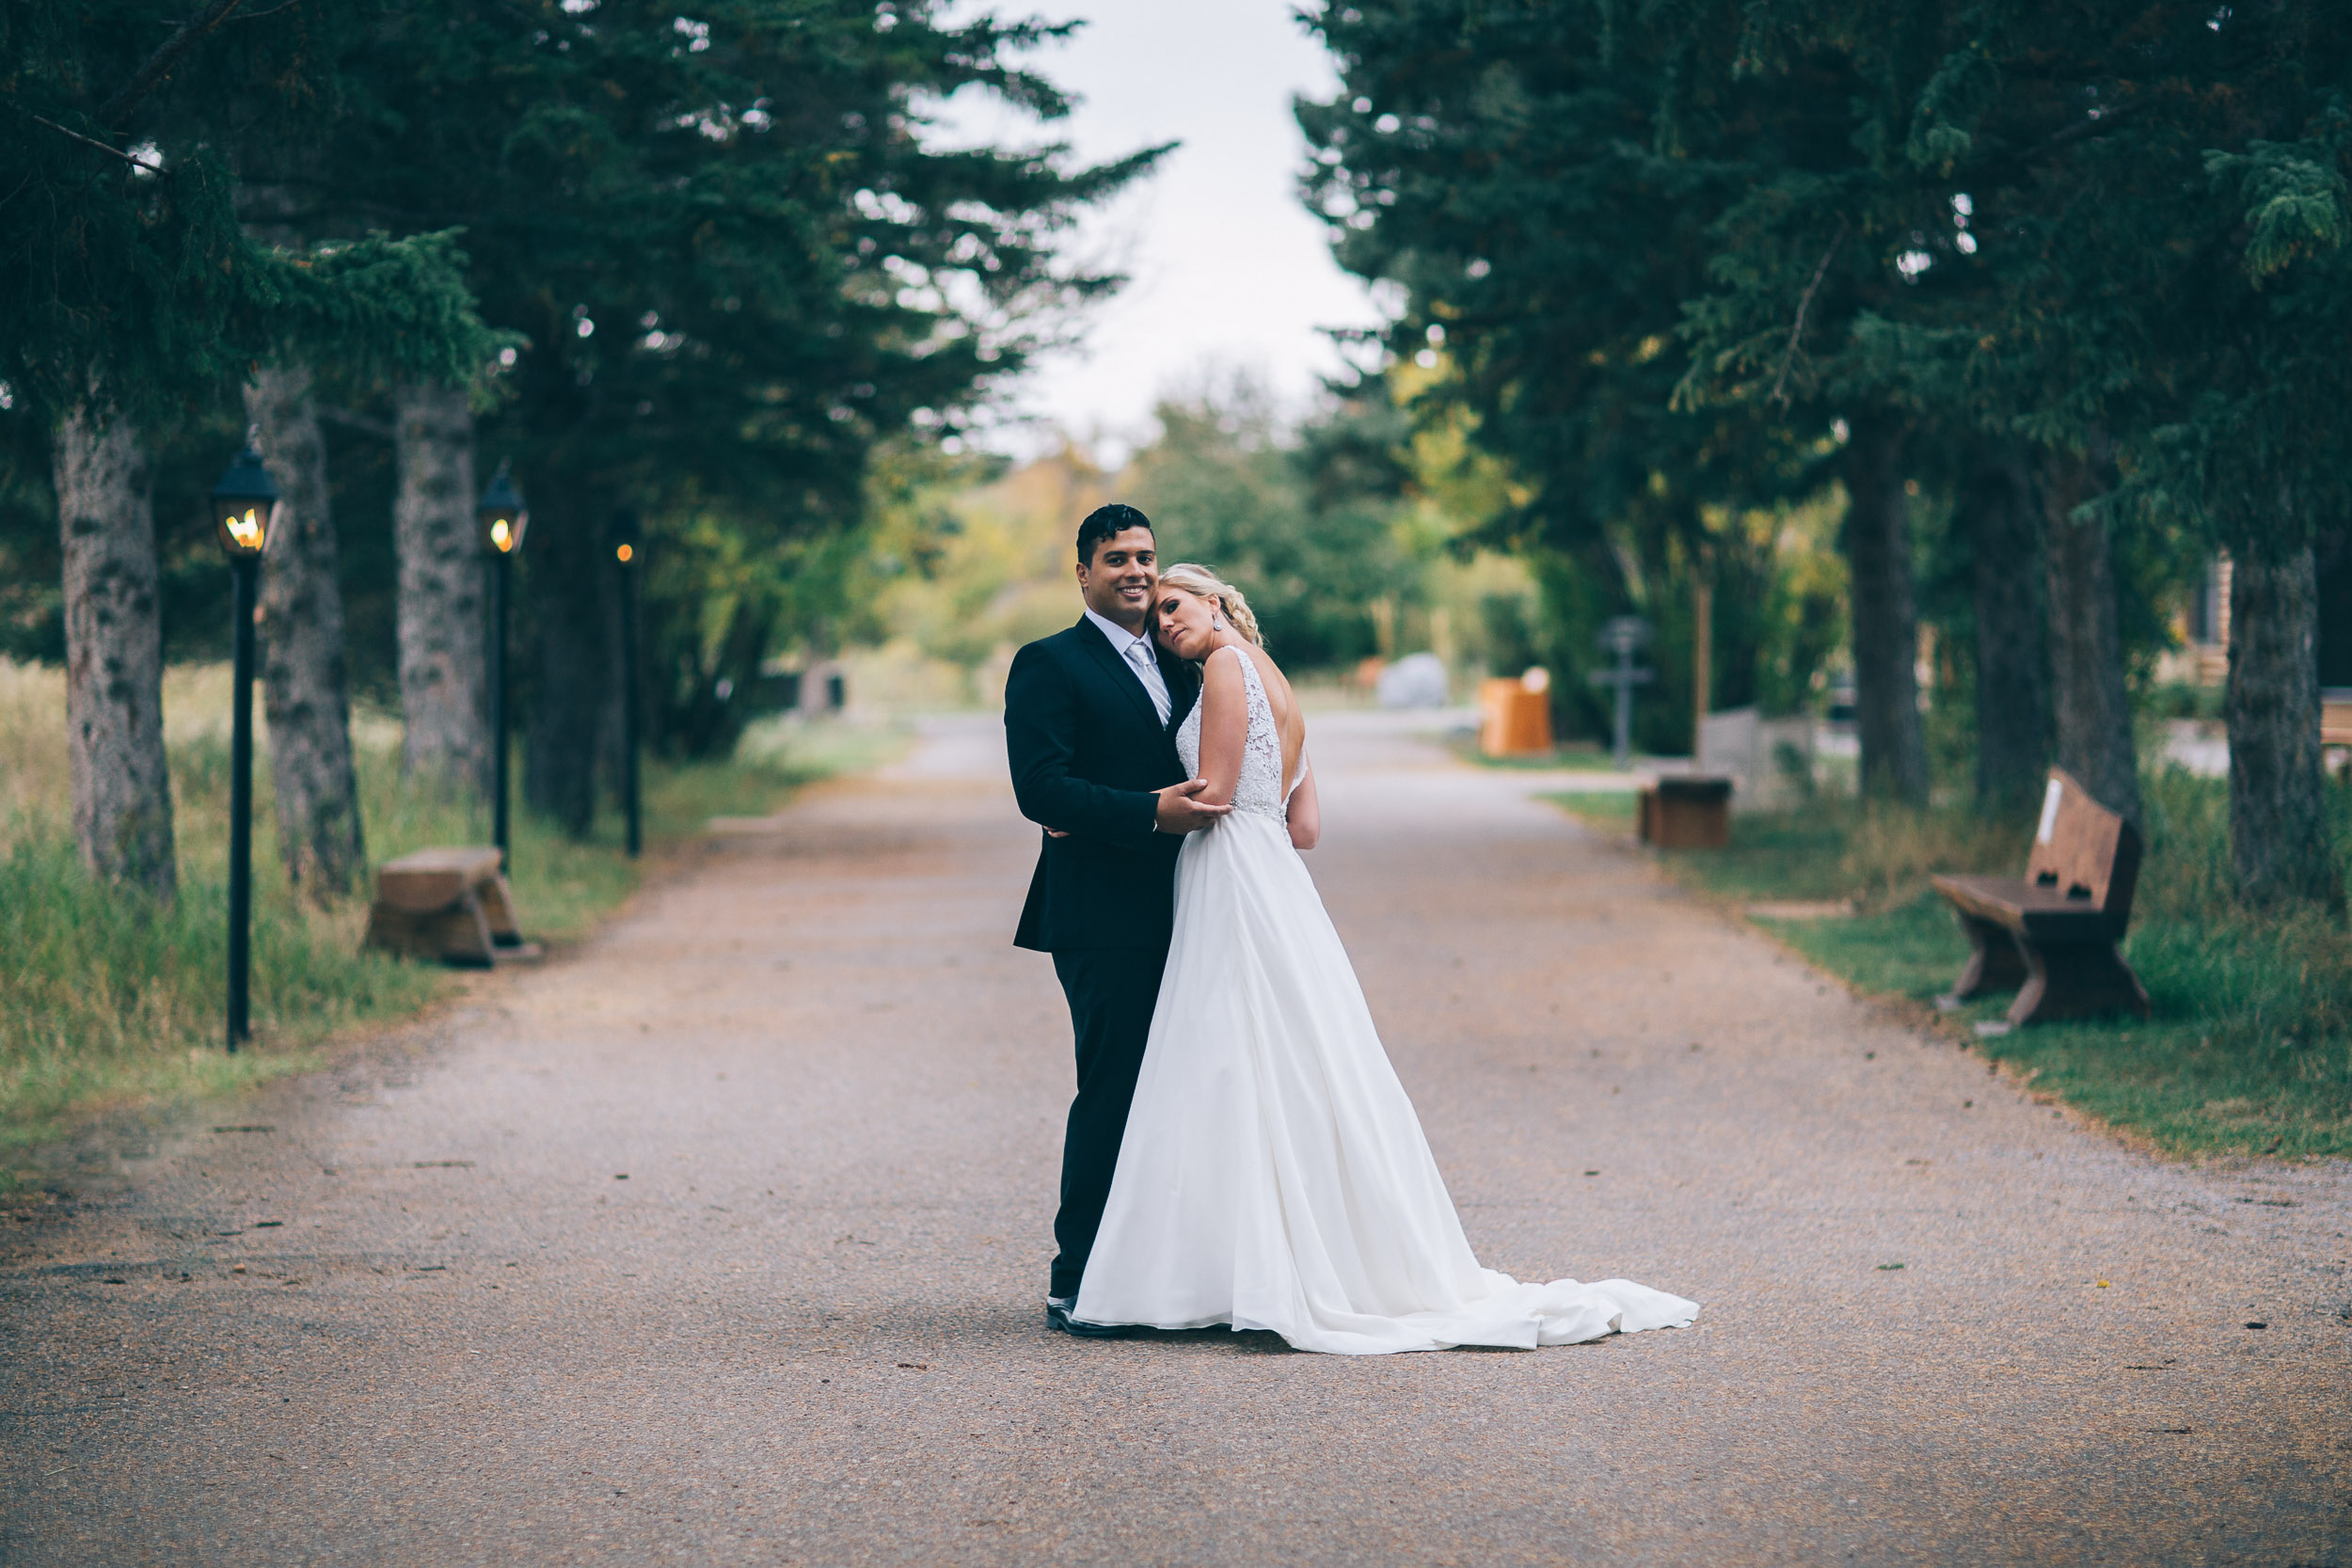 Chelsea and Ahmed 09-27-14-4700.jpg